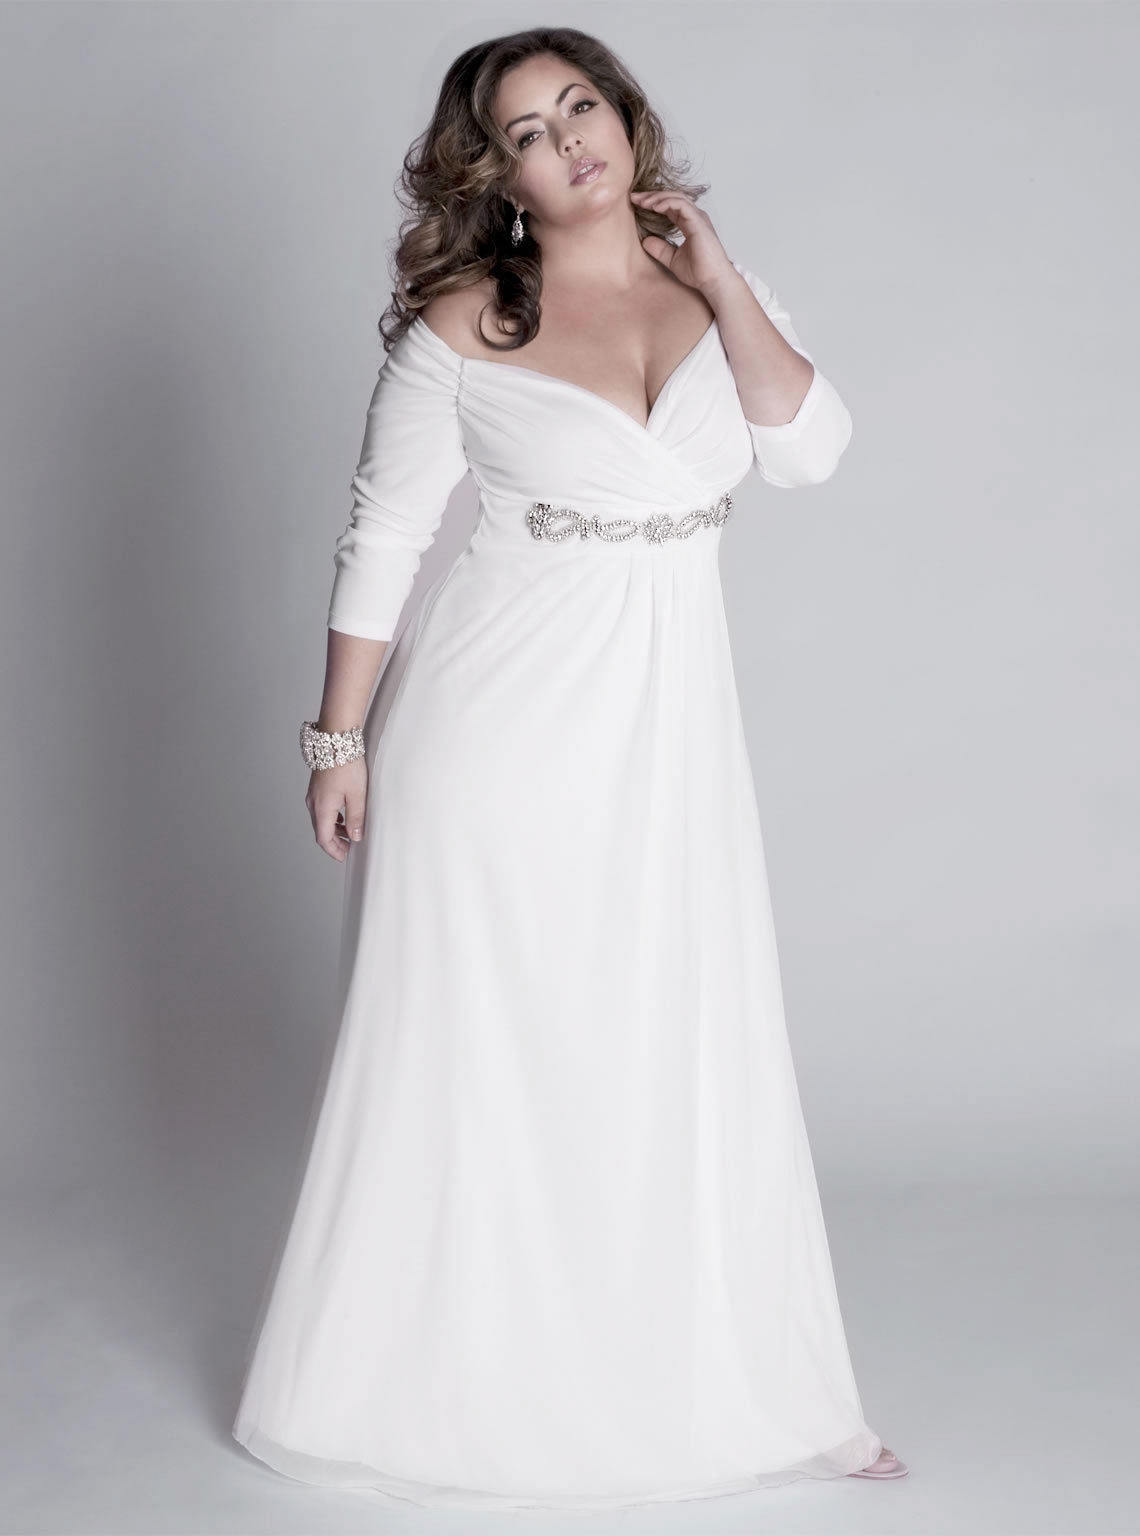 Graduation Dresses Plus Size White And Review Clothing Brand